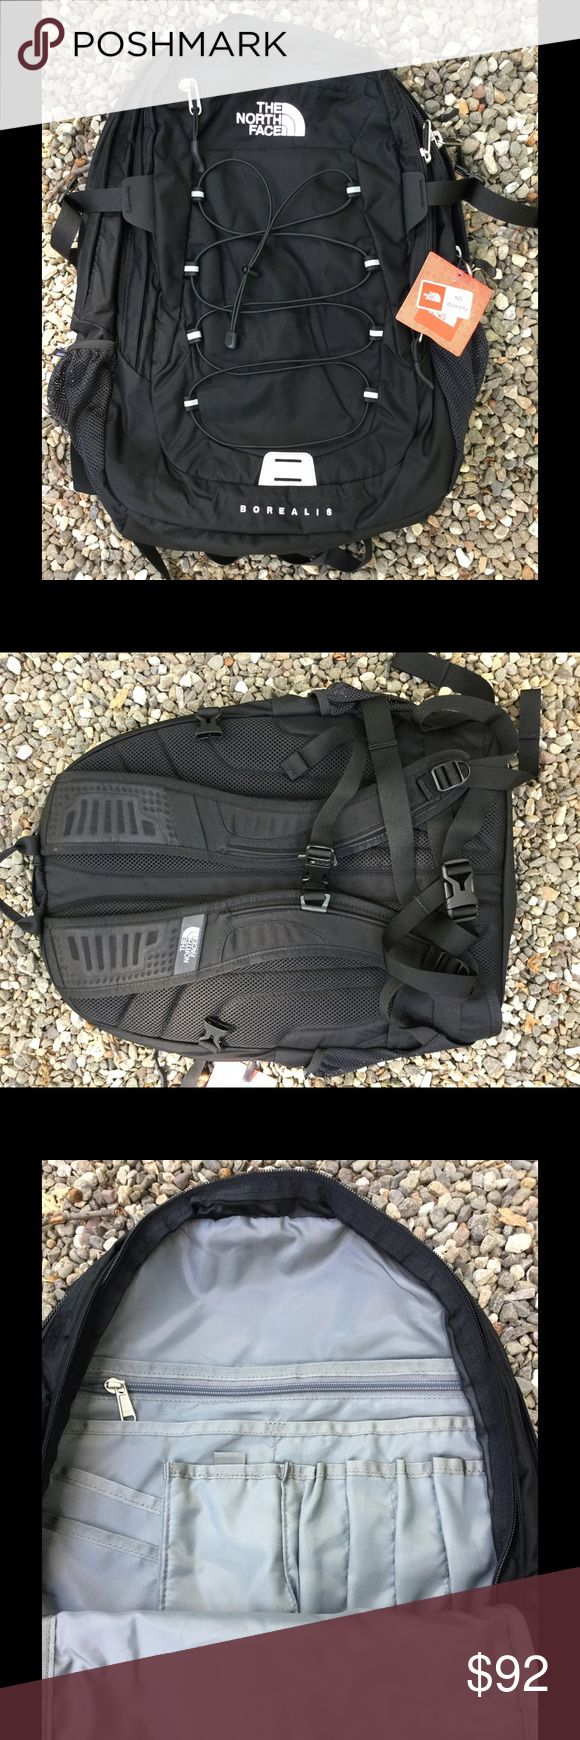 North Face men's unisex Borealis backpack Blk new The North Face men's unisex Borealis Backpack, book bag , daypack. Laptop case. Guaranteed genuine and authentic. New with tags. TNF BLACK.  No trades and only reasonable offers will be entertained. The North Face Bags Backpacks